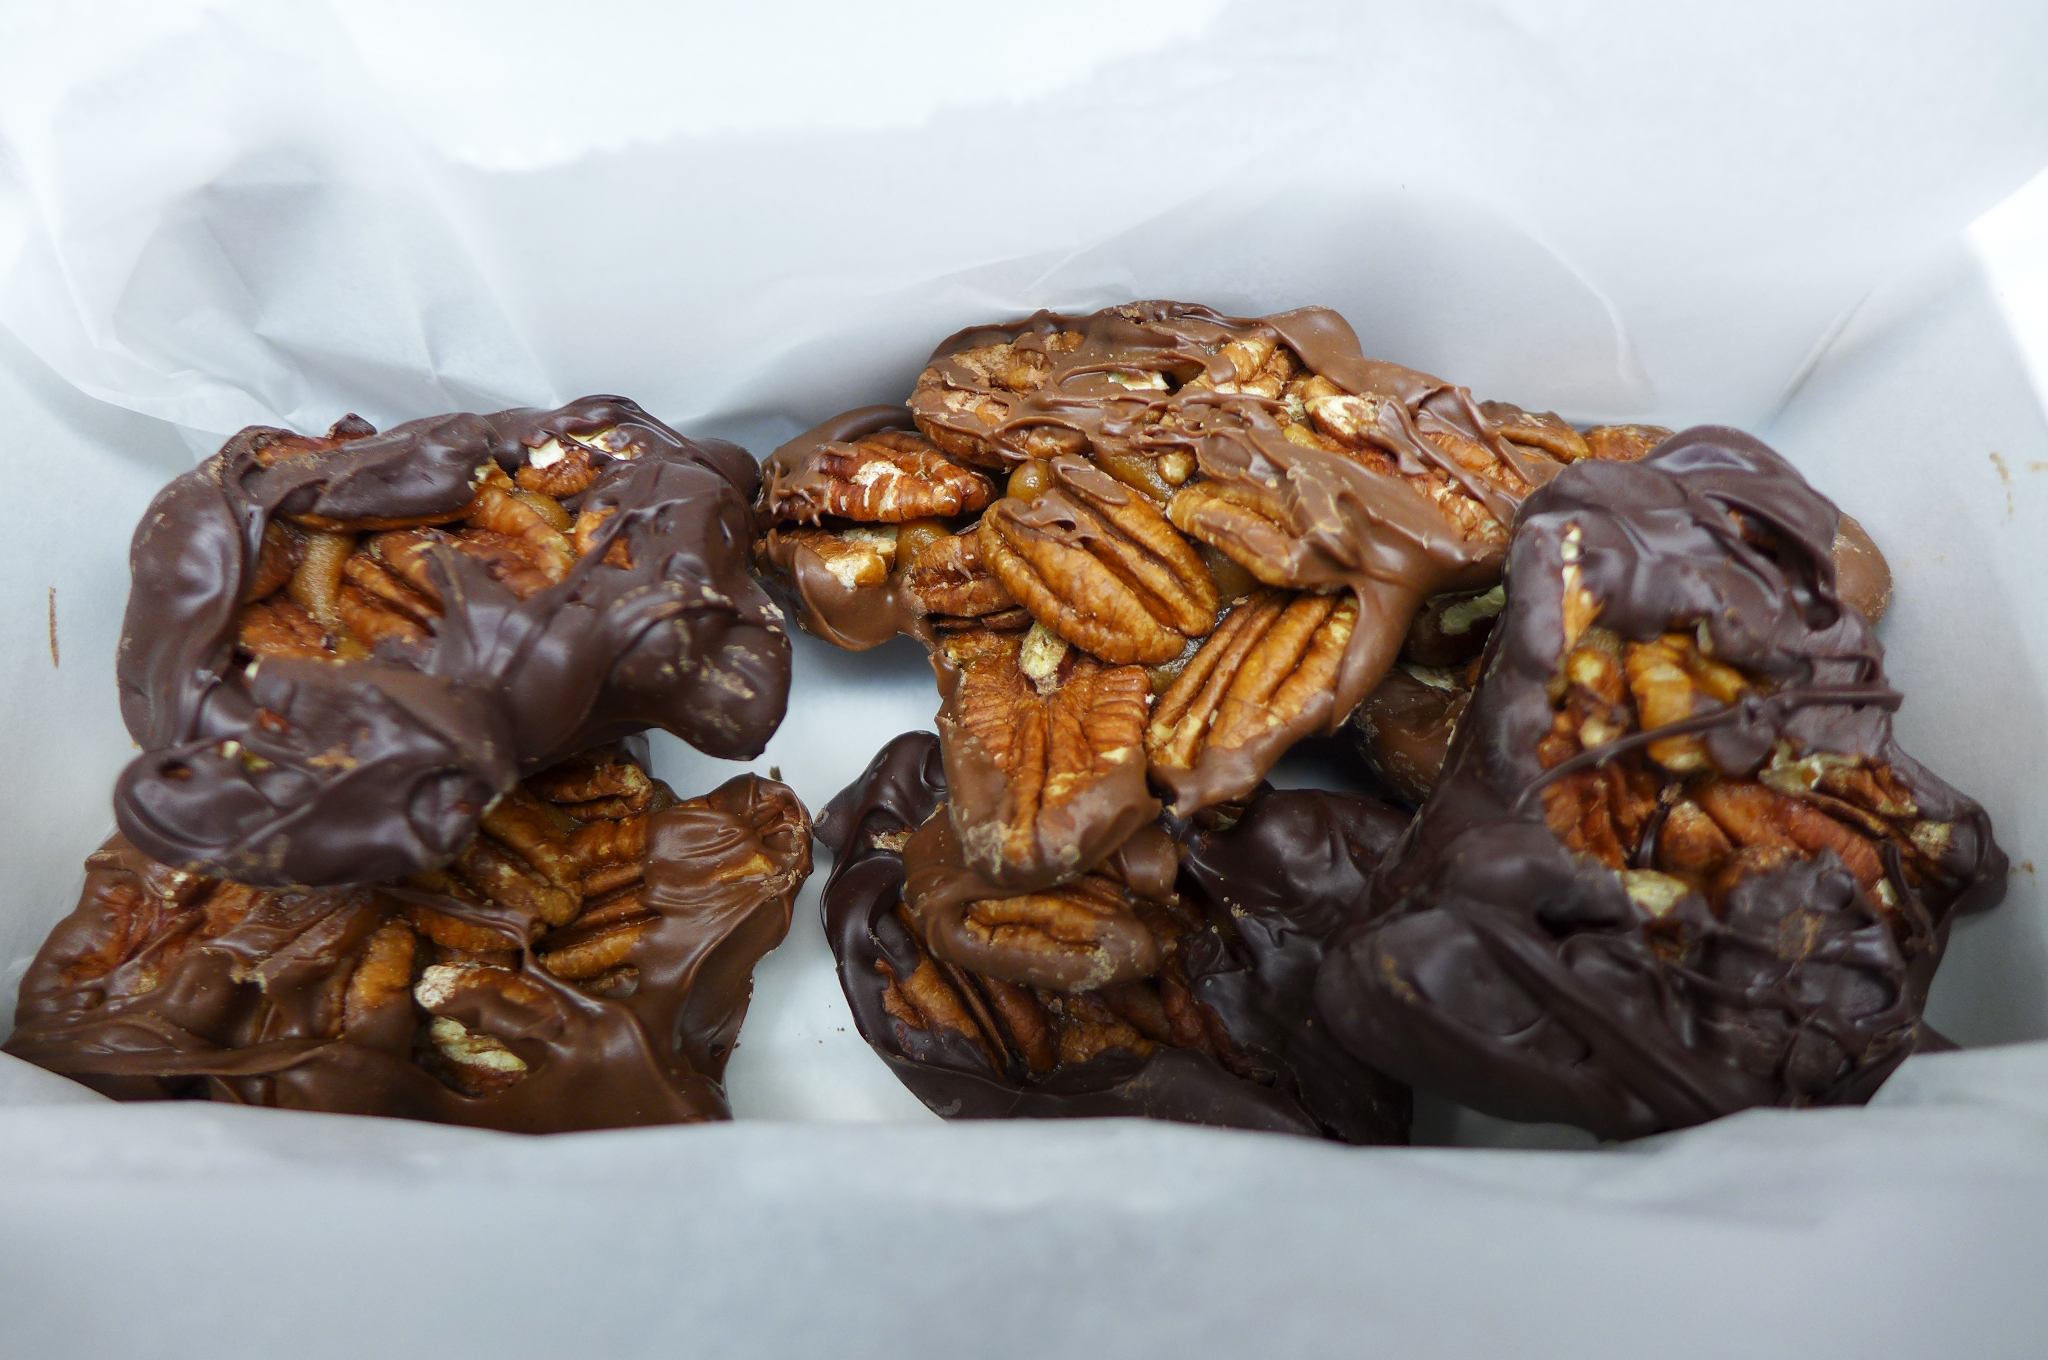 Best Chocolate Turtles In Nyc